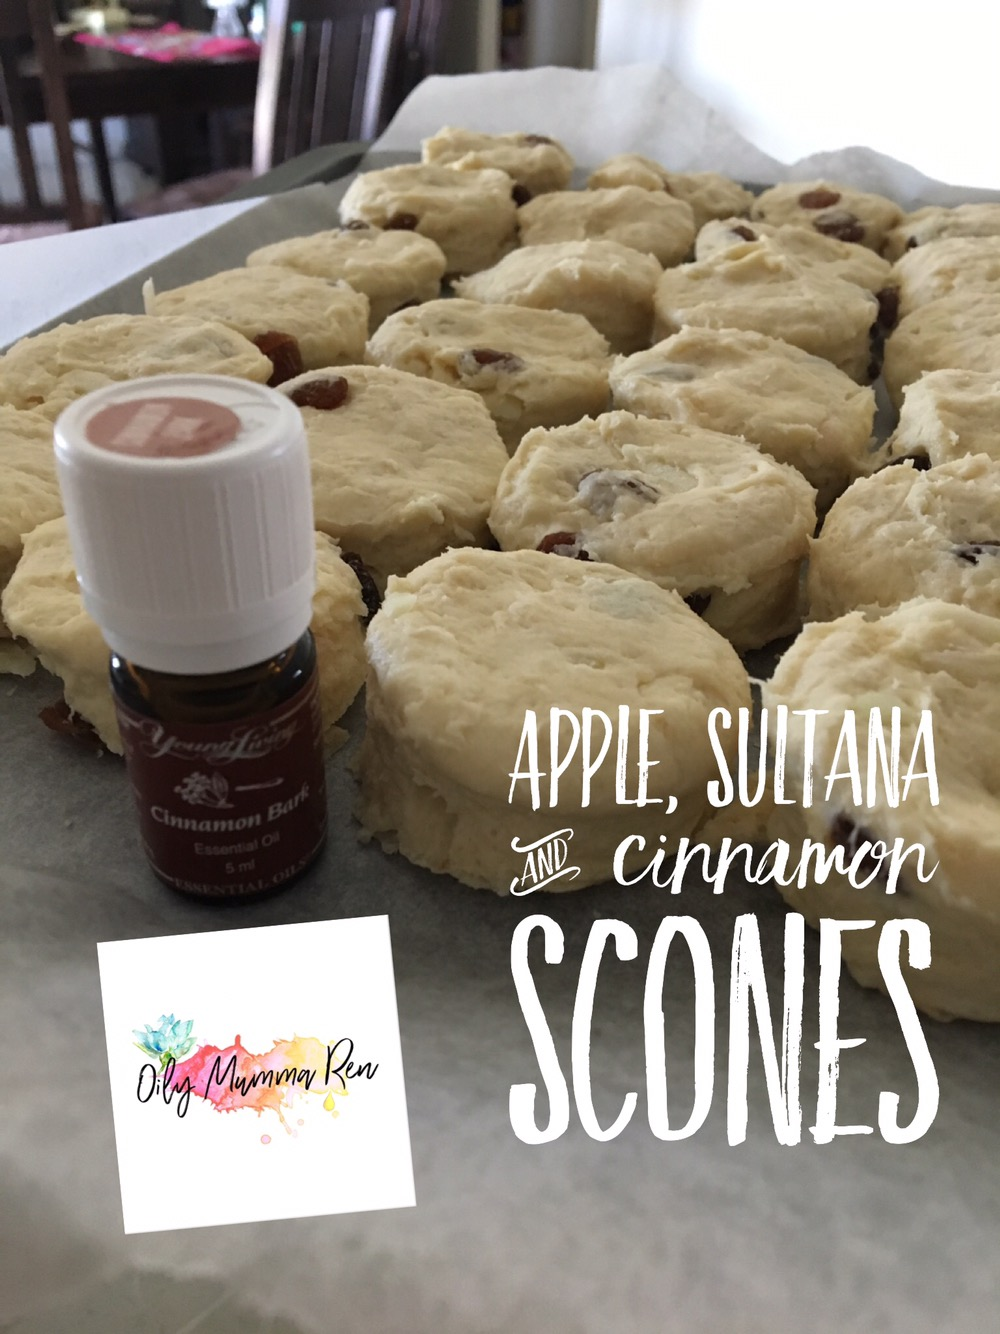 Apple, Sultana & Cinnamon Scones